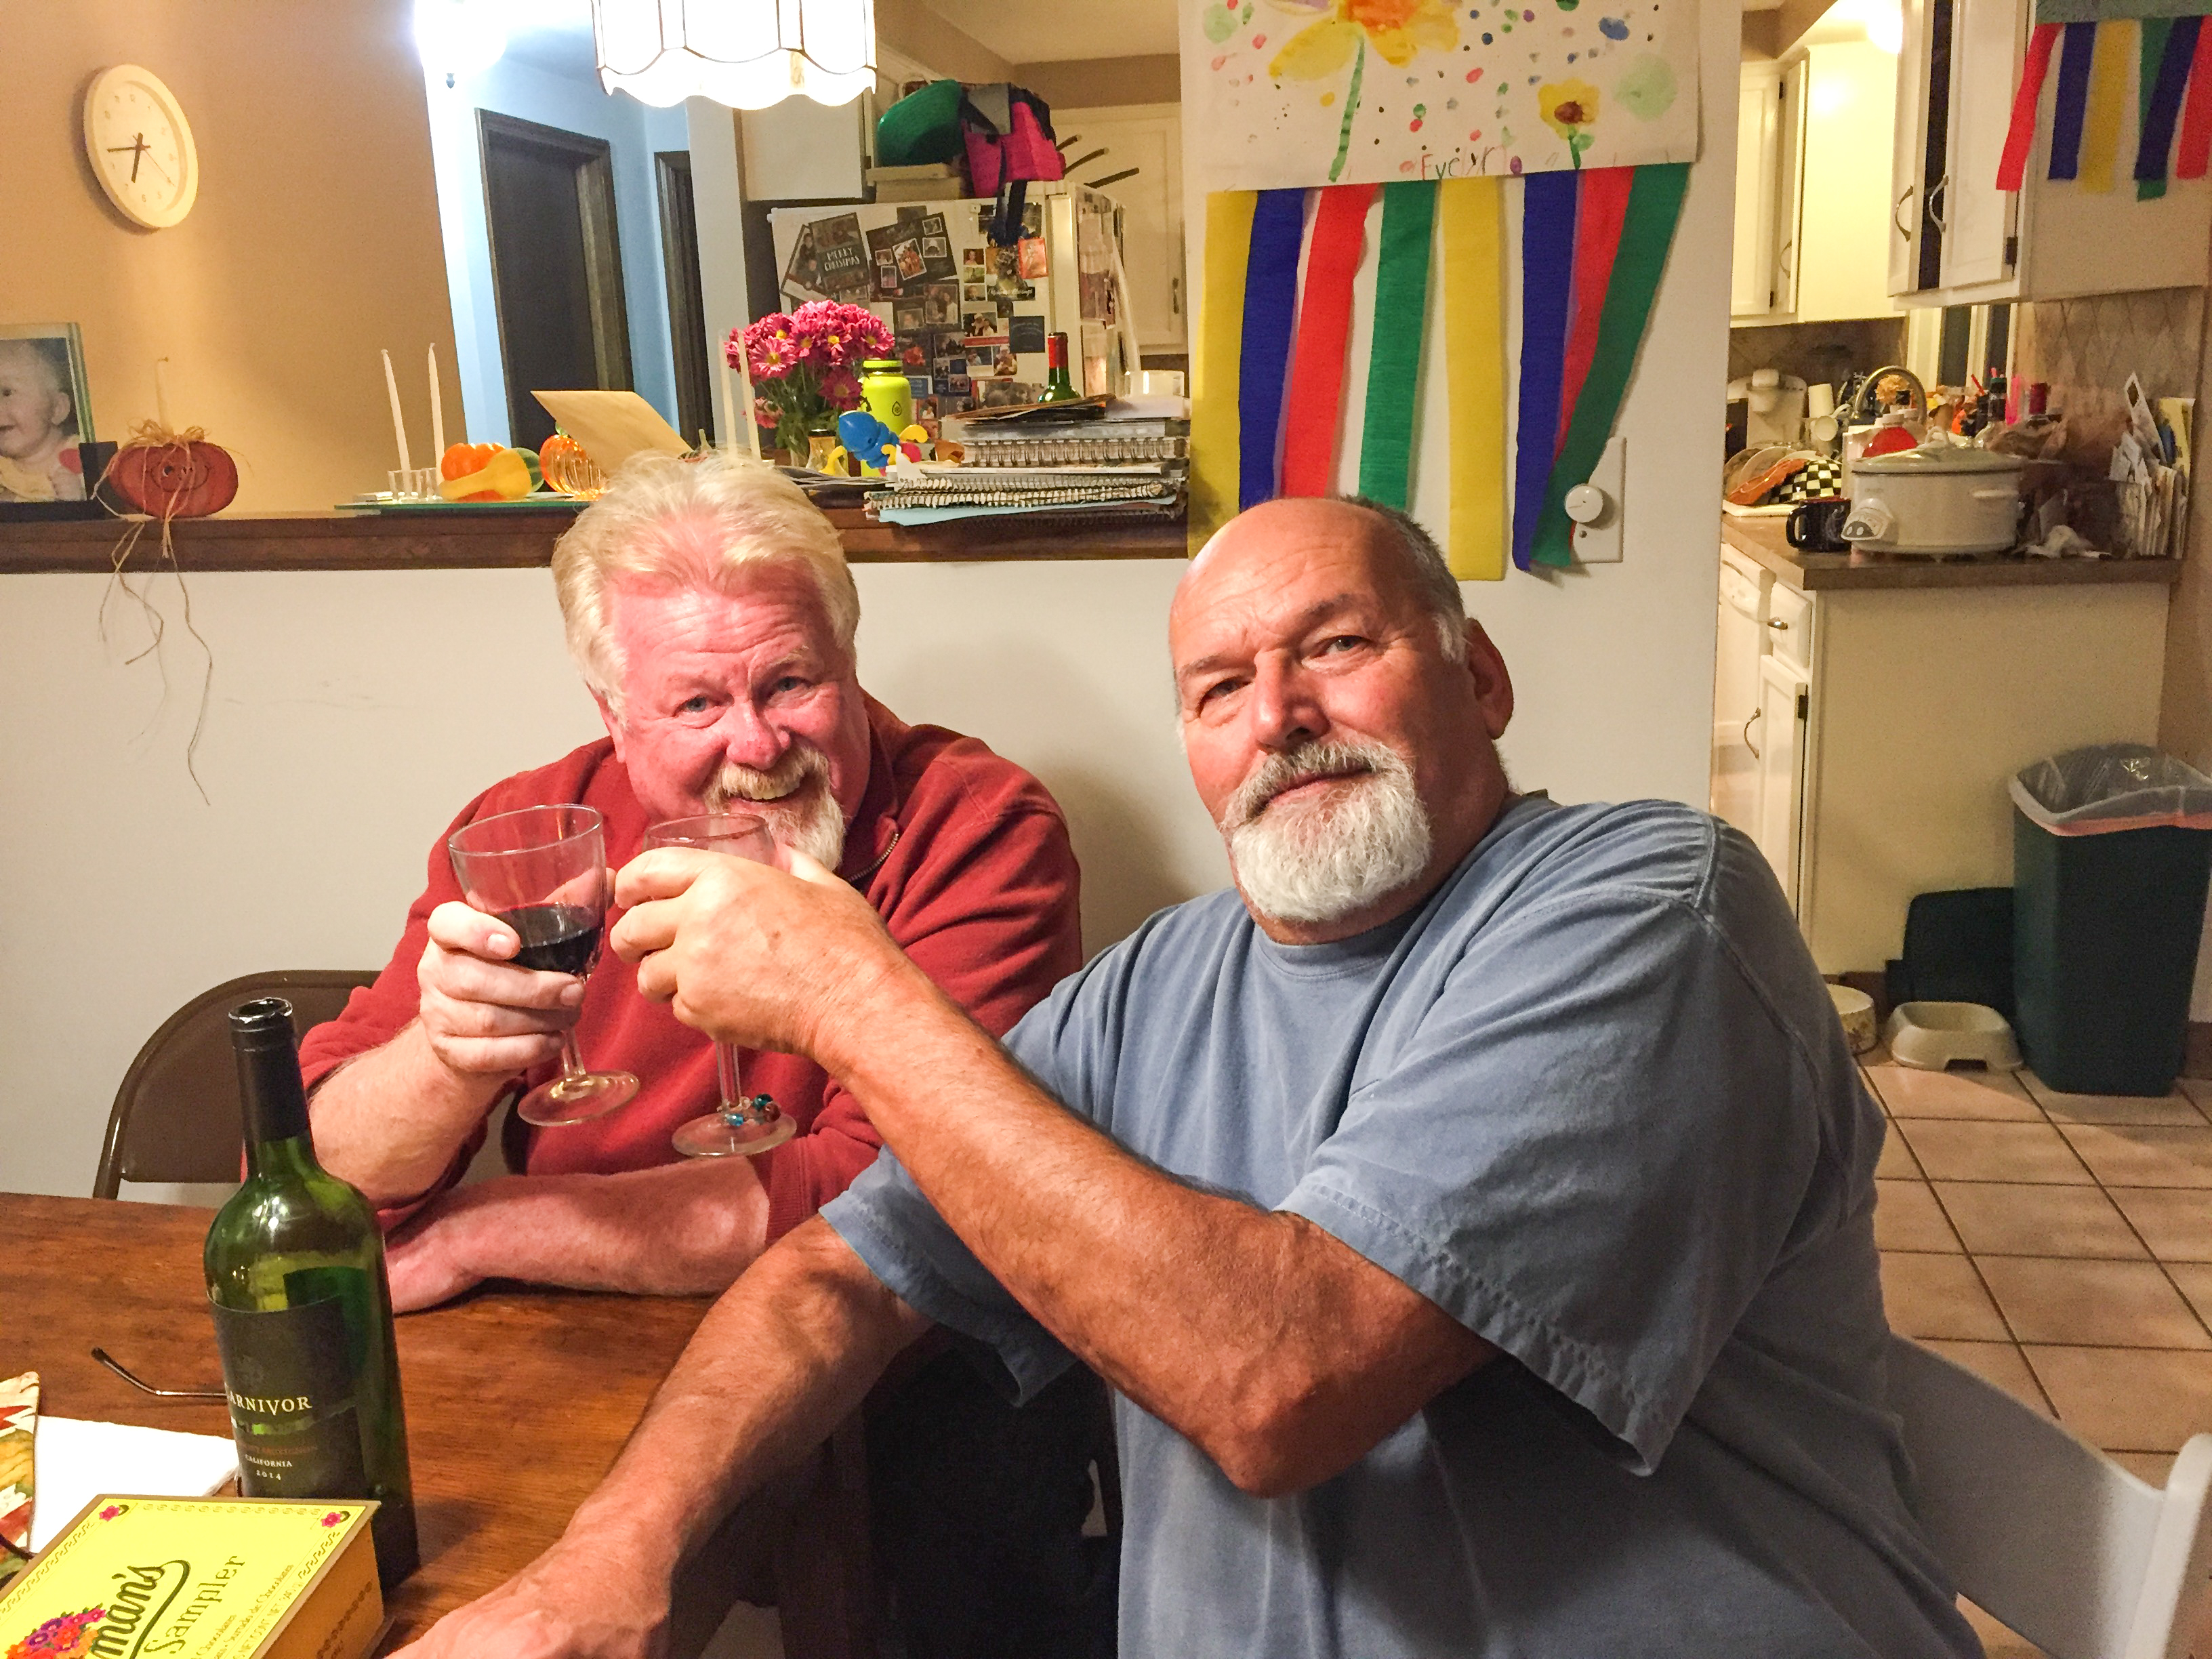 My father and uncle clinking glasses around the holidays